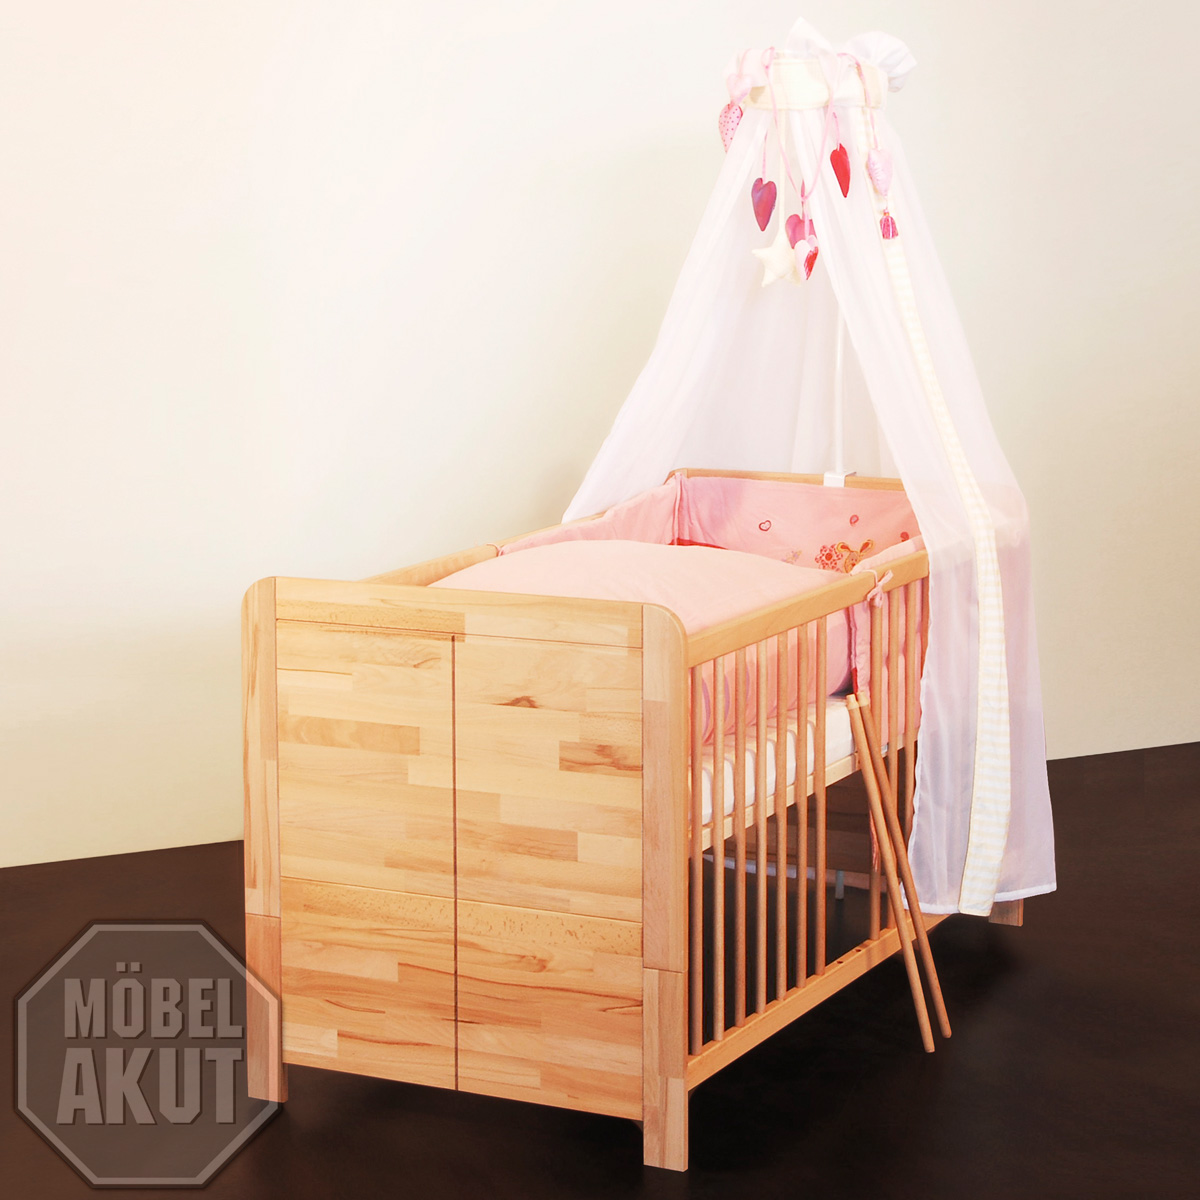 babybett berlin bett kinderbett in kernbuche massiv buche 70x140 ebay. Black Bedroom Furniture Sets. Home Design Ideas